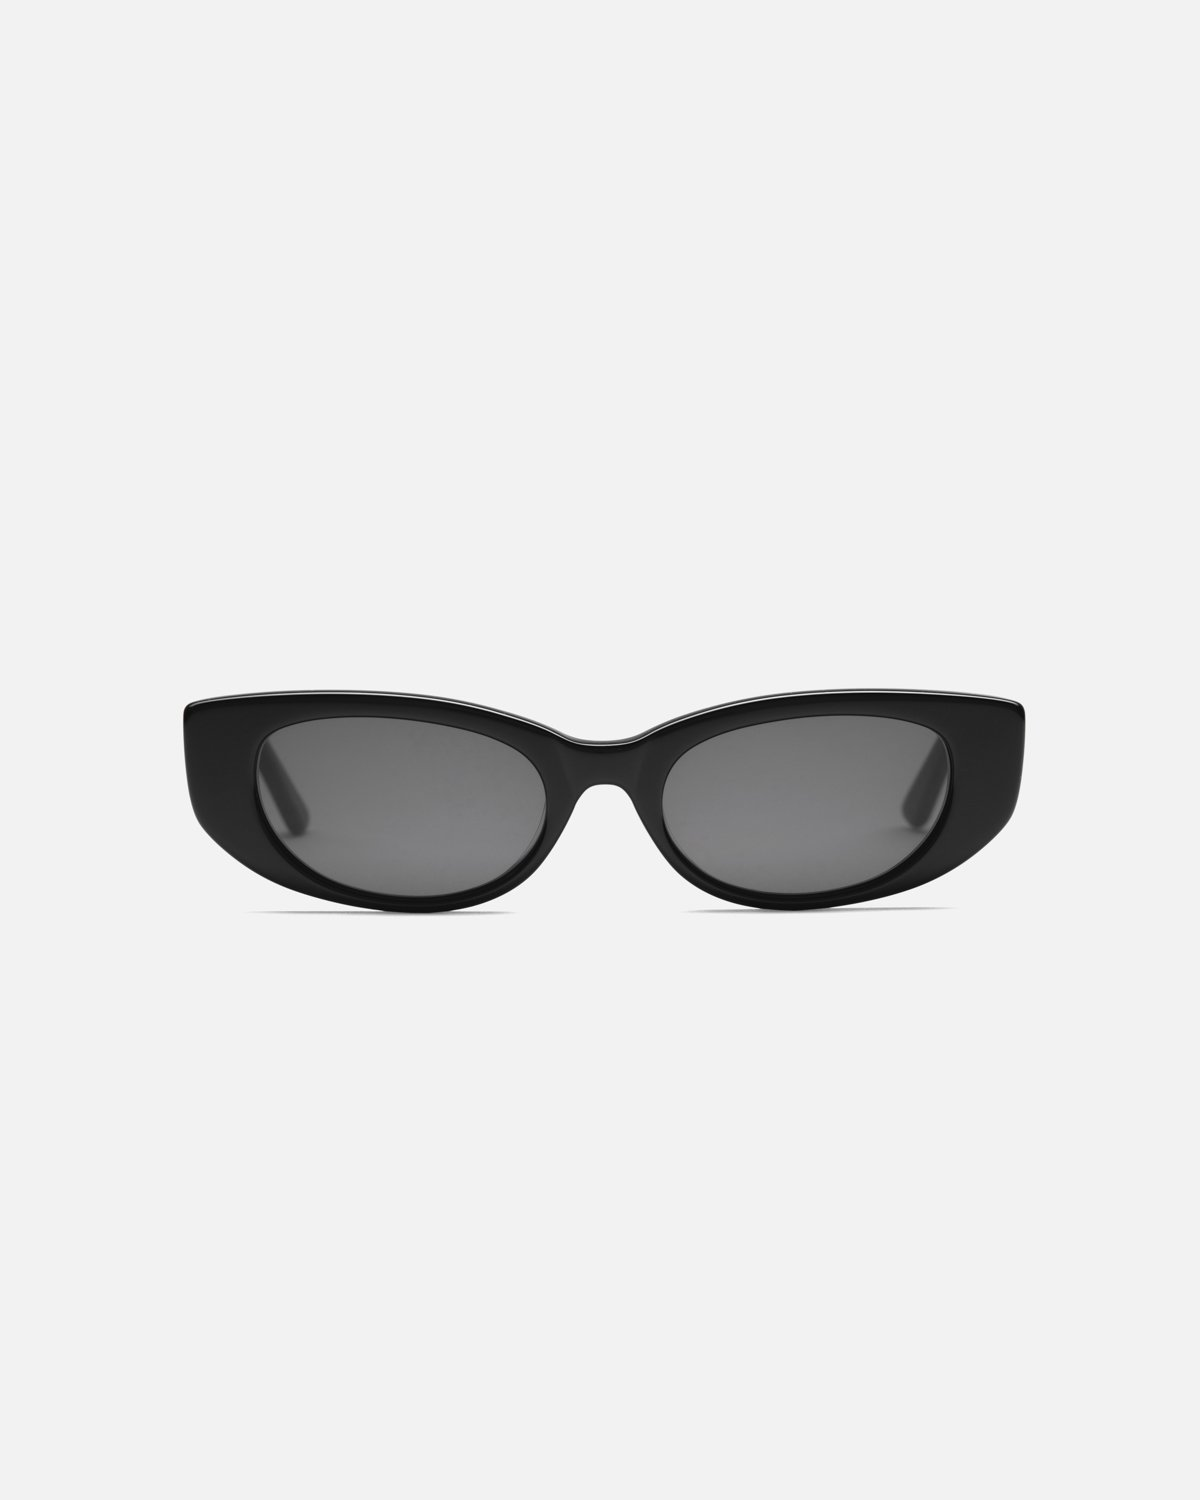 Lotte Black by Lu Goldie, available on lugoldie.com for $169 Hailey Baldwin Sunglasses Exact Product